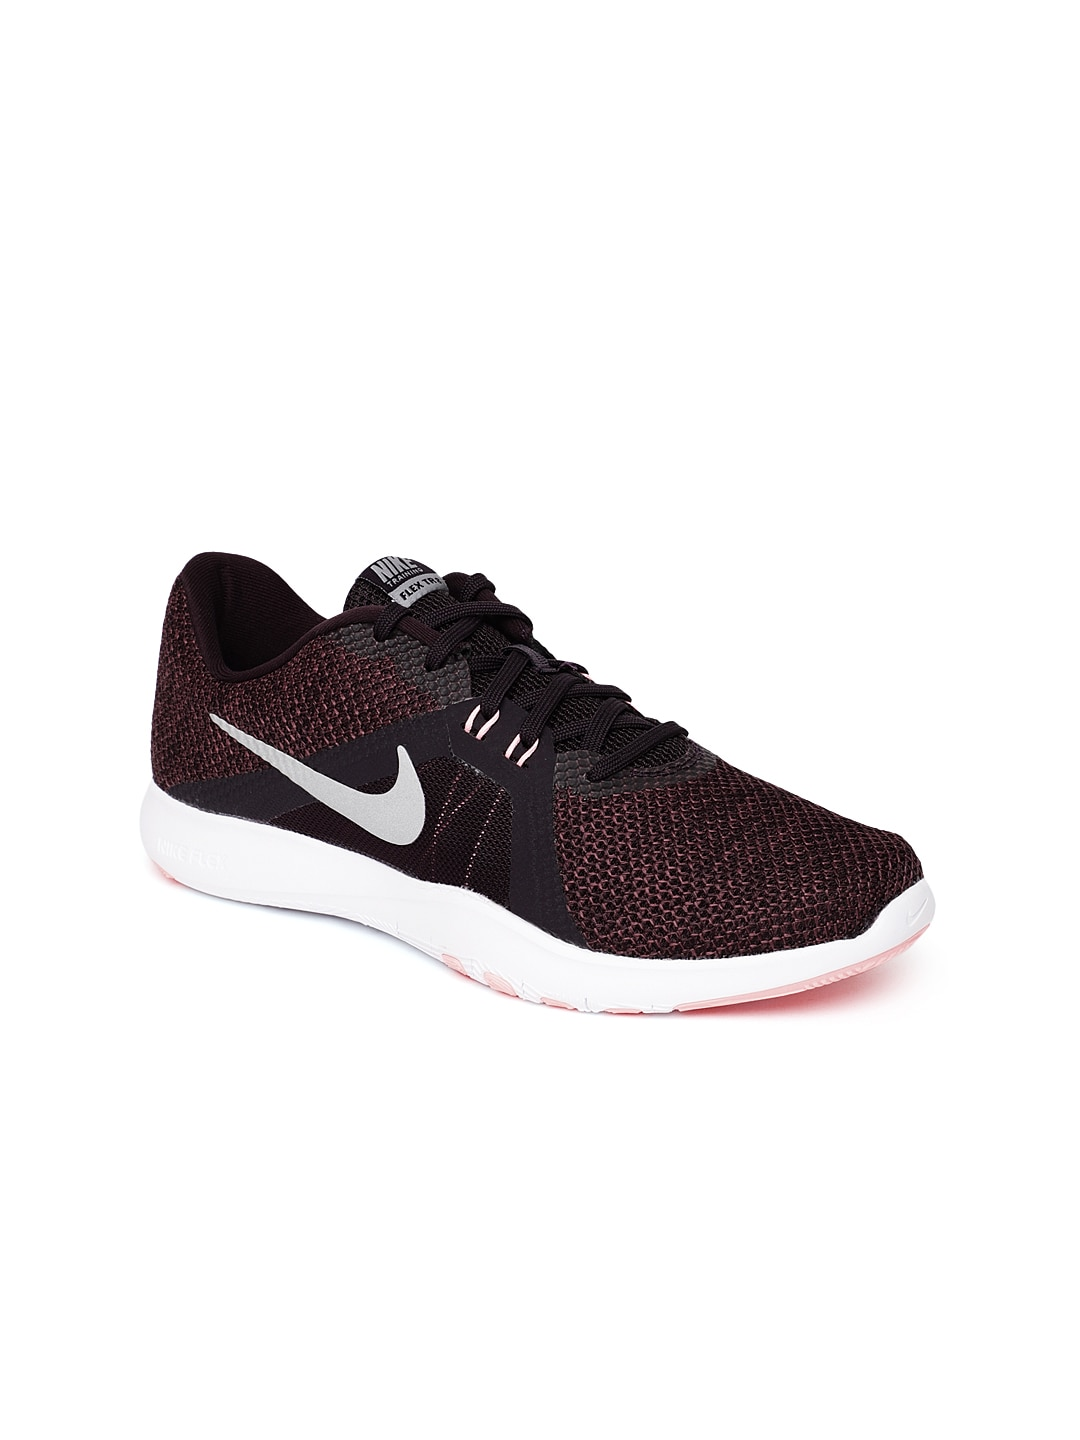 new style f67dc 526e3 Nike Briefs Tights Sports Shoes - Buy Nike Briefs Tights Sports Shoes  online in India